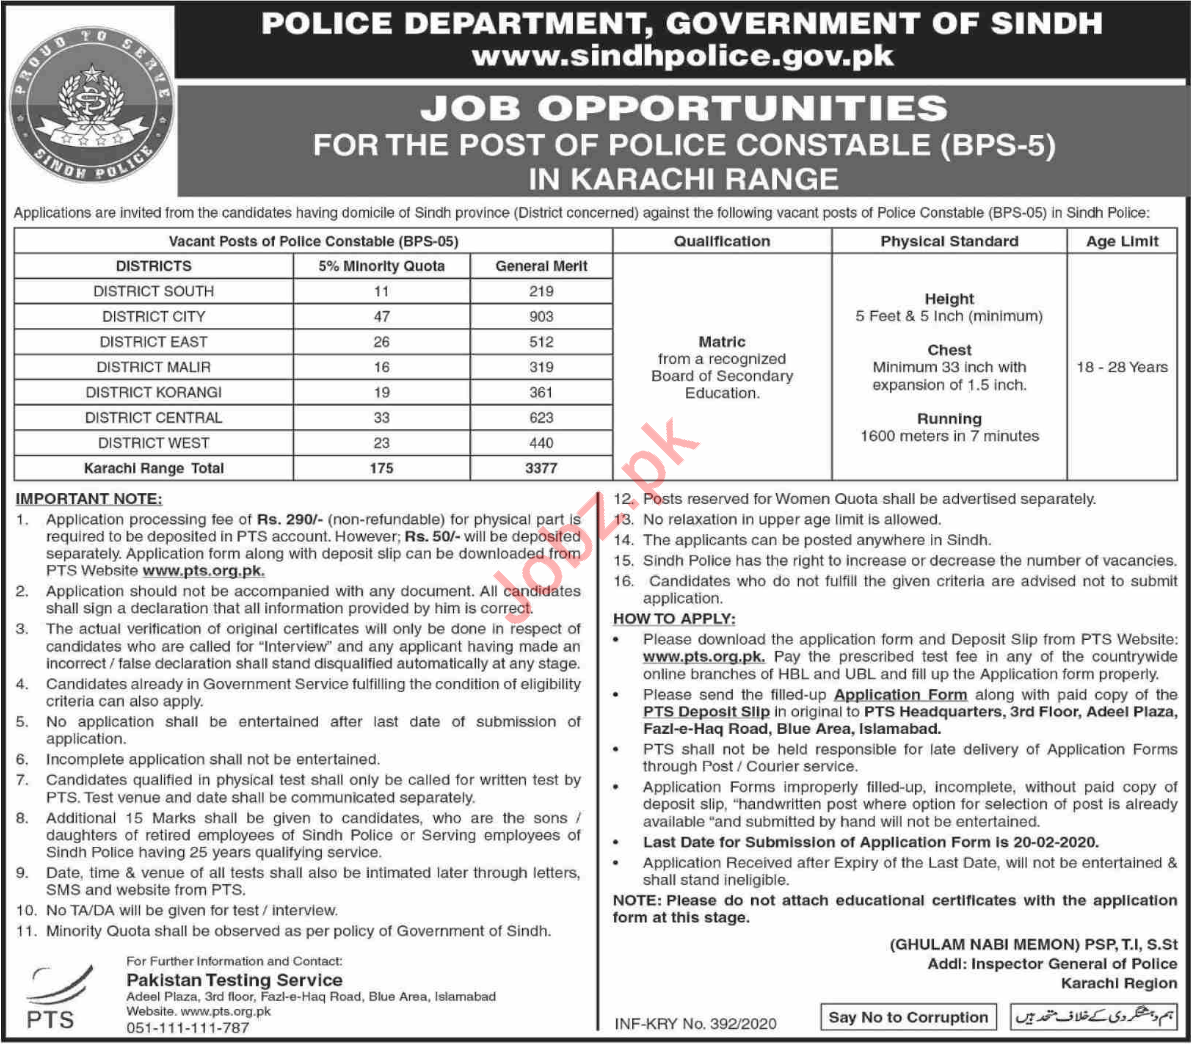 Constable Jobs in Sindh Police Department Karachi Via PTS